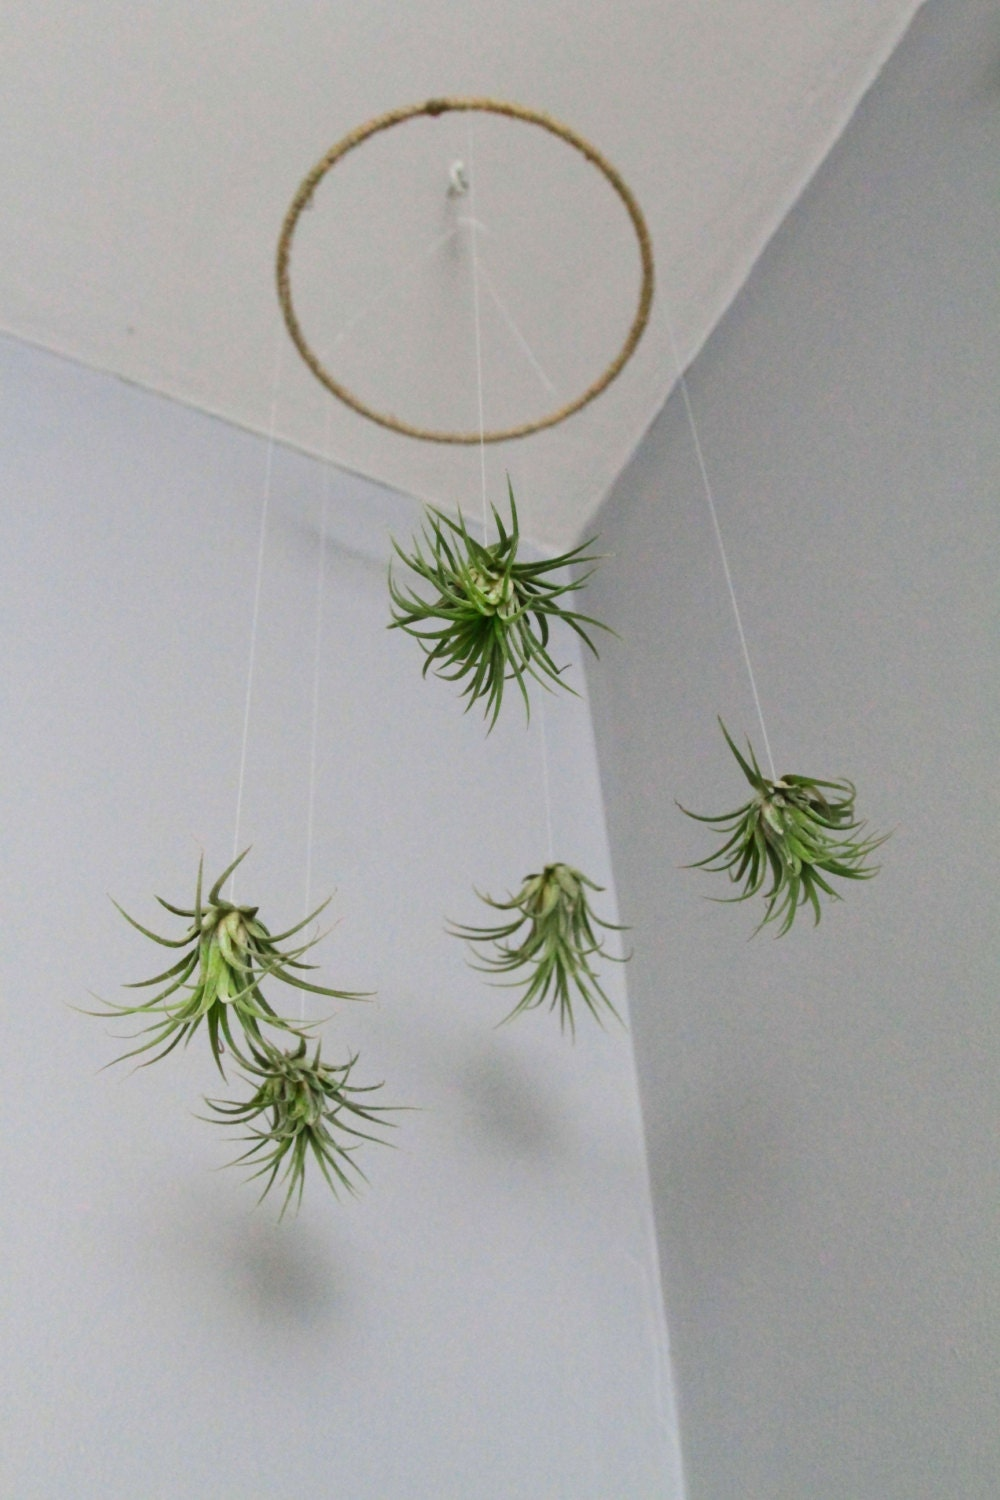 Air plant mobile natural living decor home decor - Plant decorating ideas tasteful nature ...